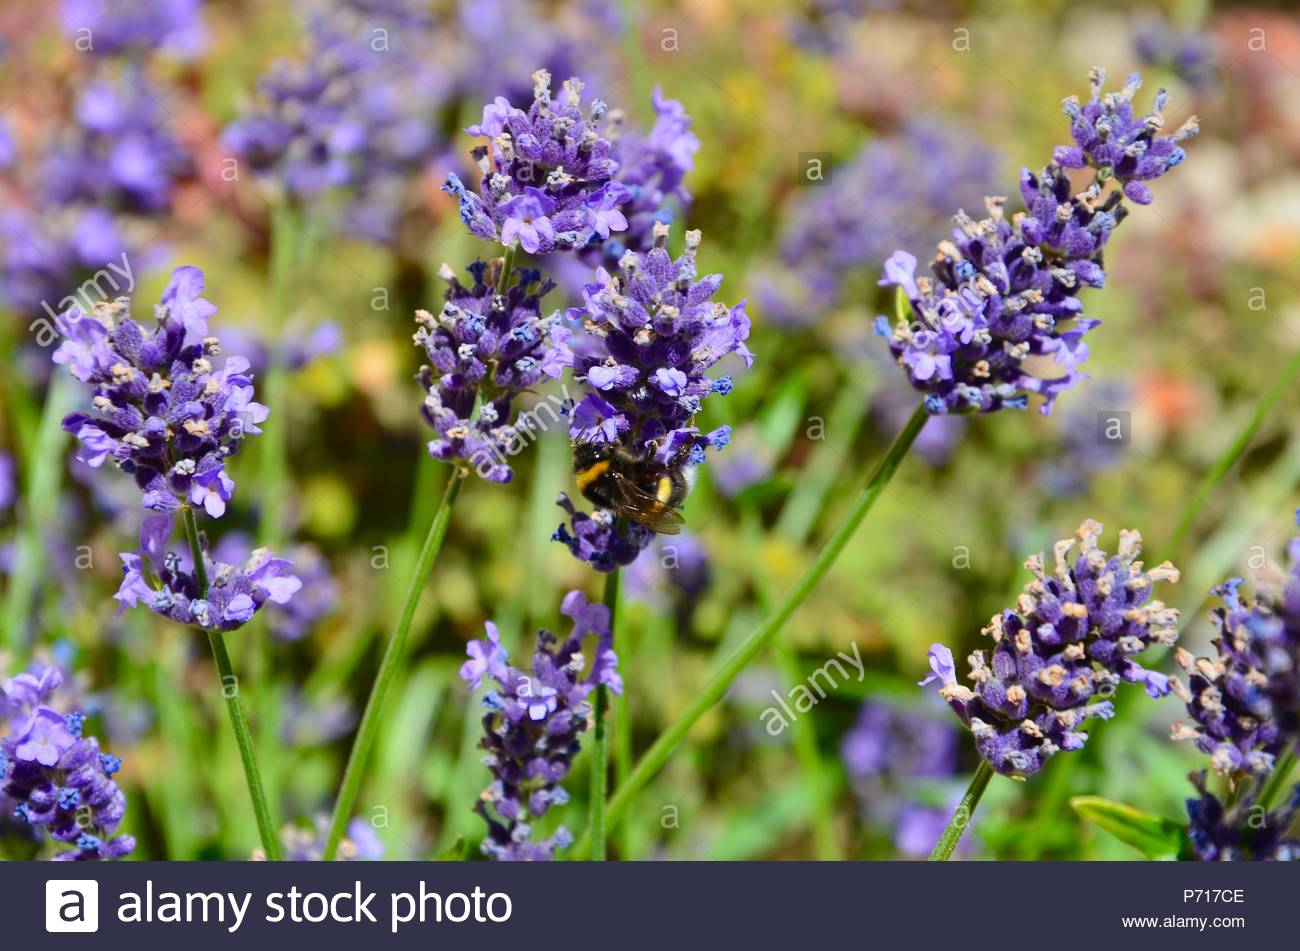 Bumblebee collecting nectar of blooming lavender, summer, honey